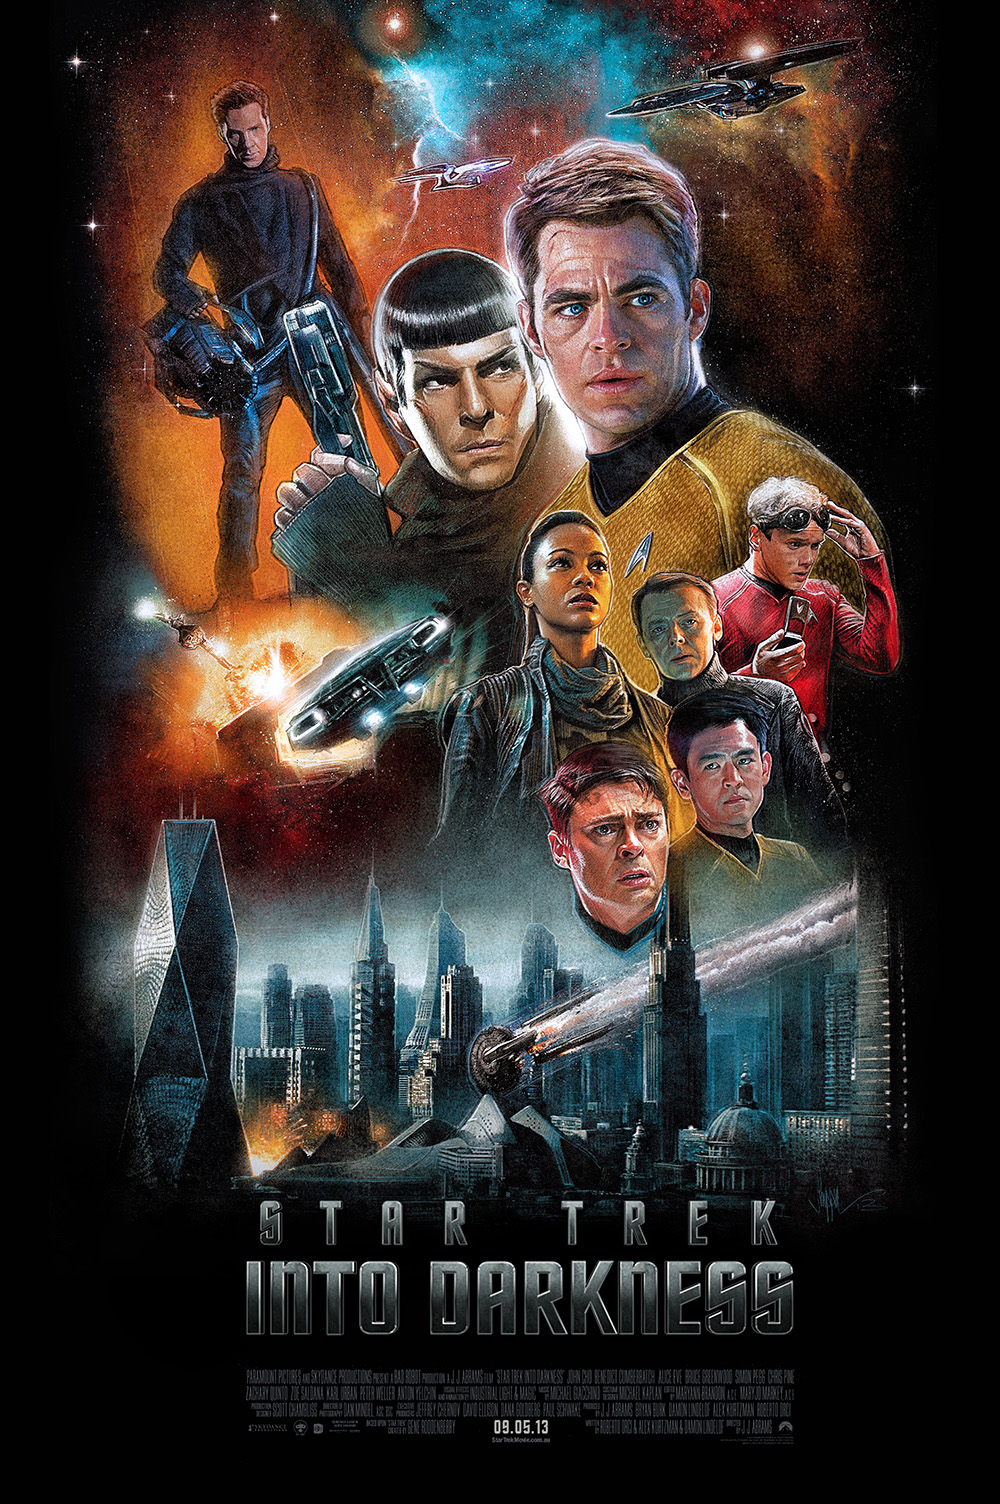 Star Trek: Into Darkness by Paul Shipper